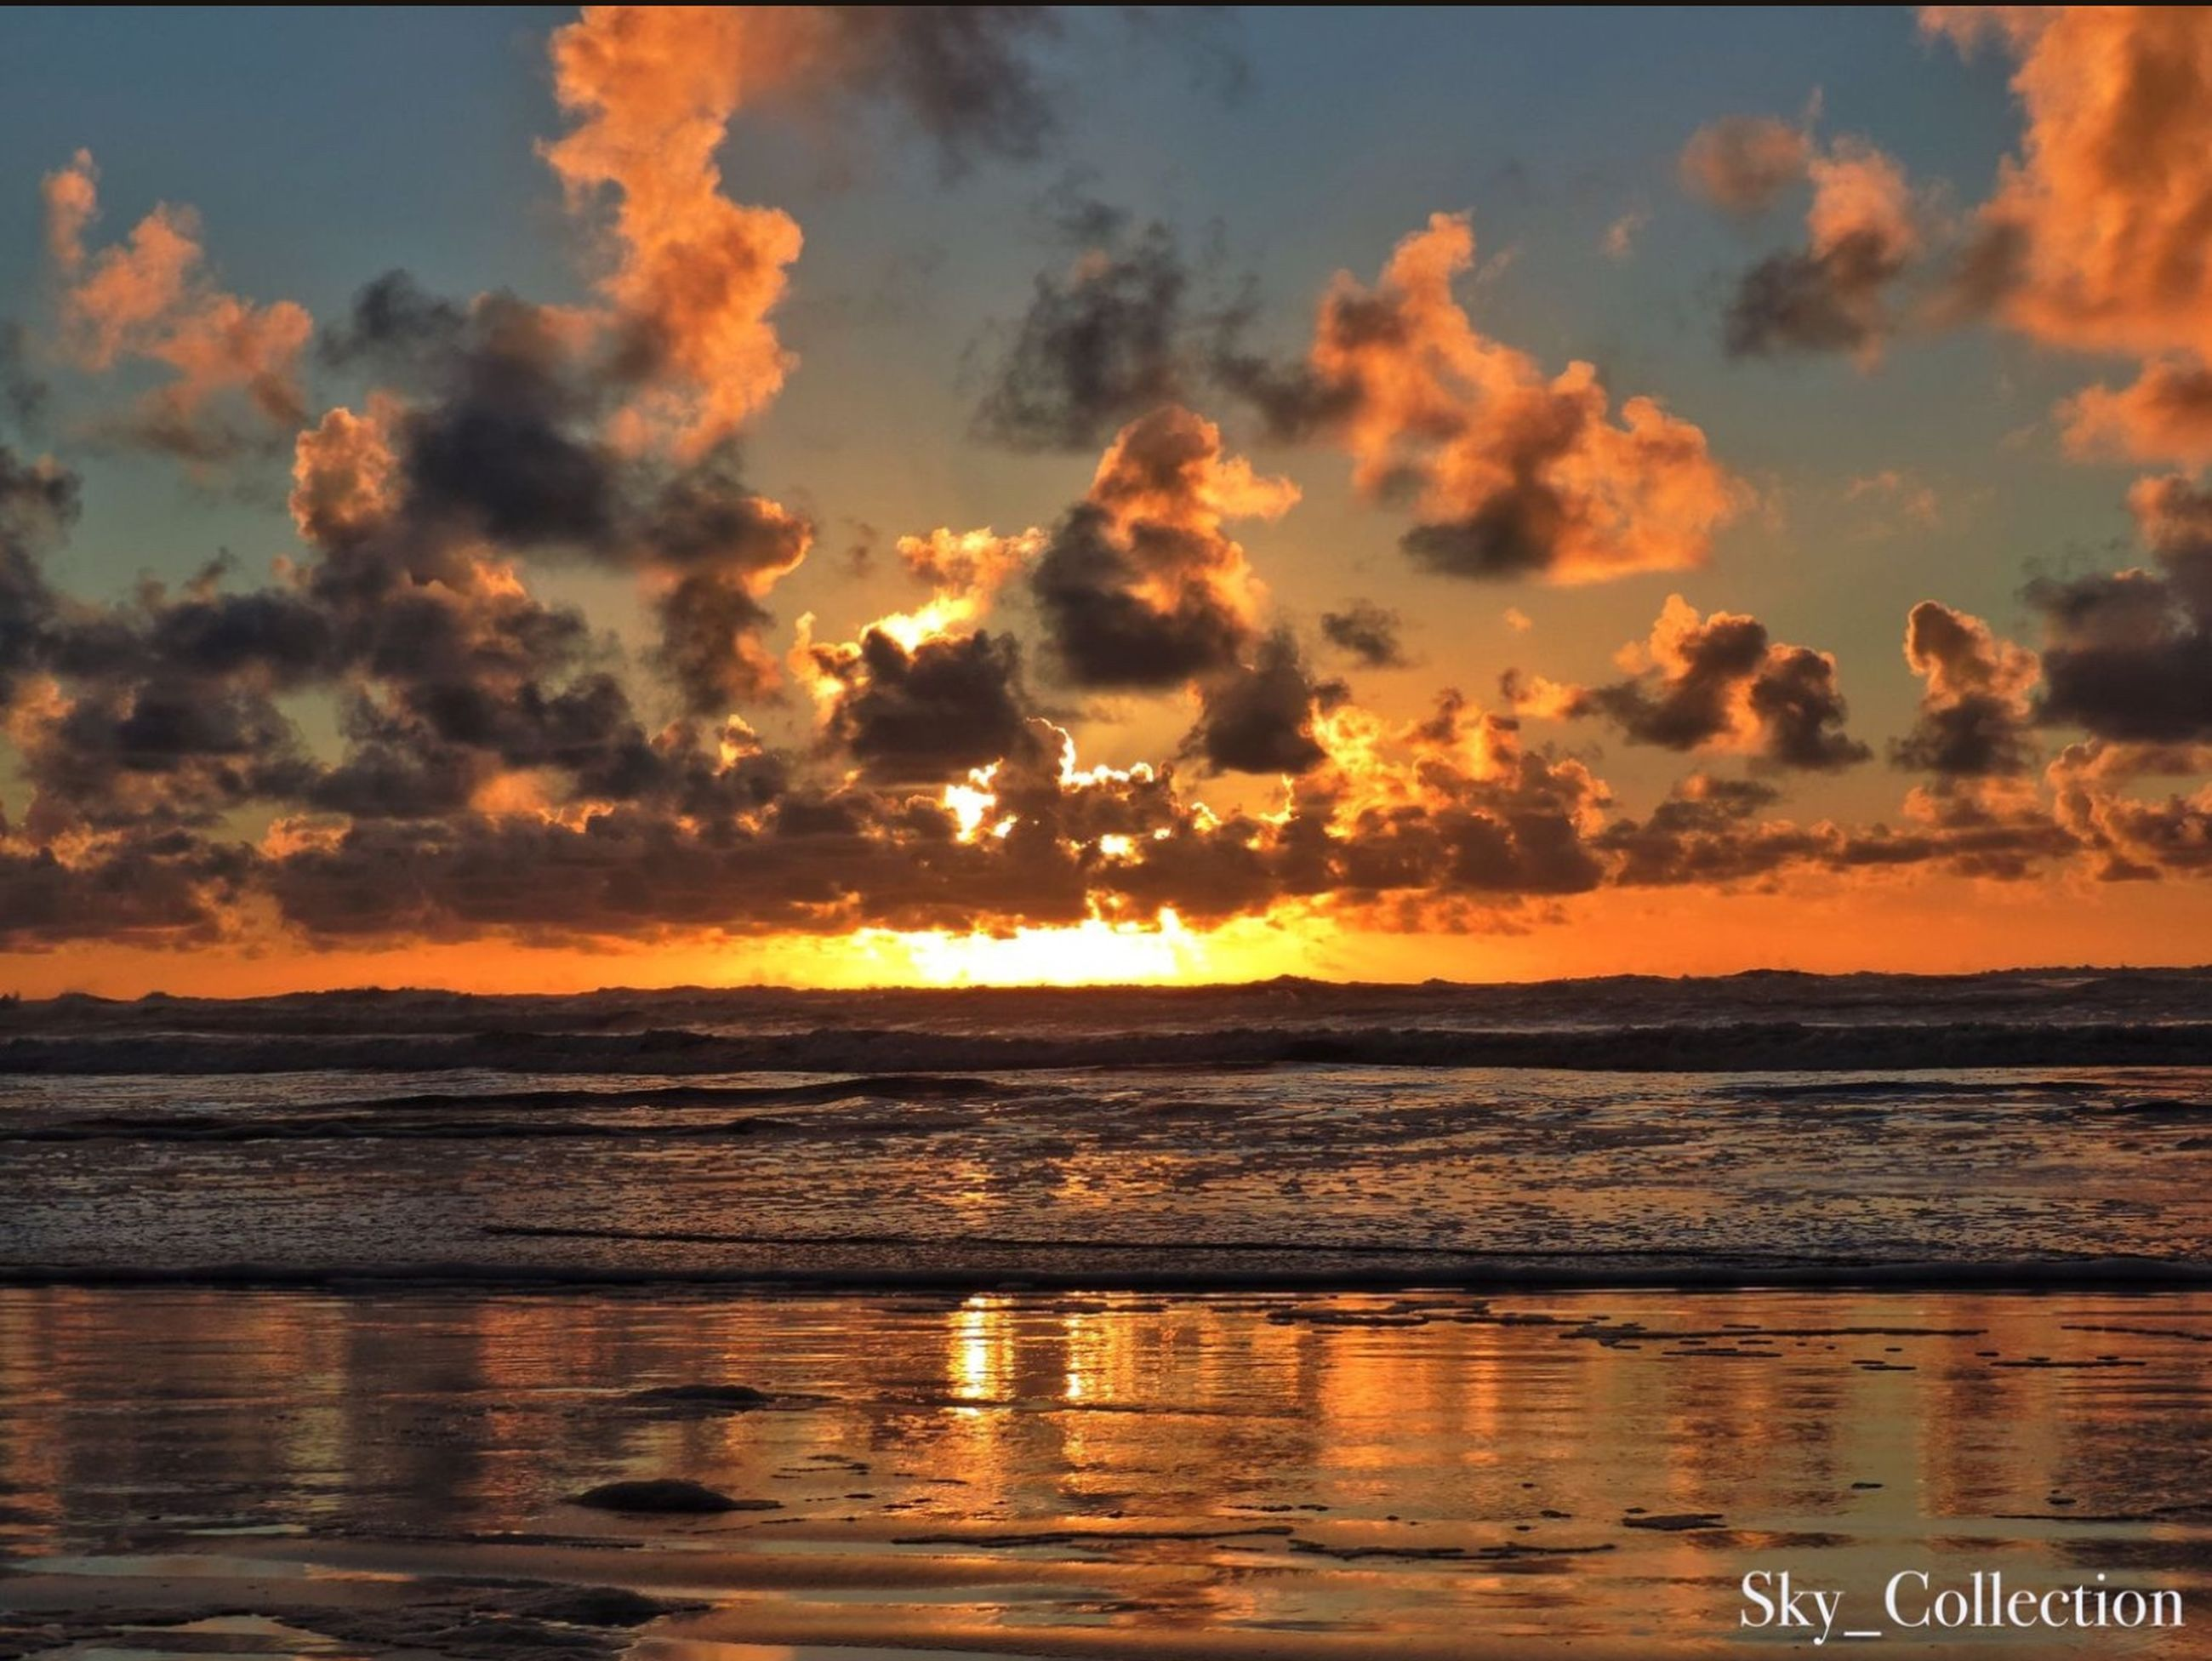 sunset, water, sea, orange color, scenics, horizon over water, sky, beauty in nature, tranquil scene, tranquility, beach, cloud - sky, idyllic, nature, shore, reflection, cloud, dramatic sky, waterfront, outdoors